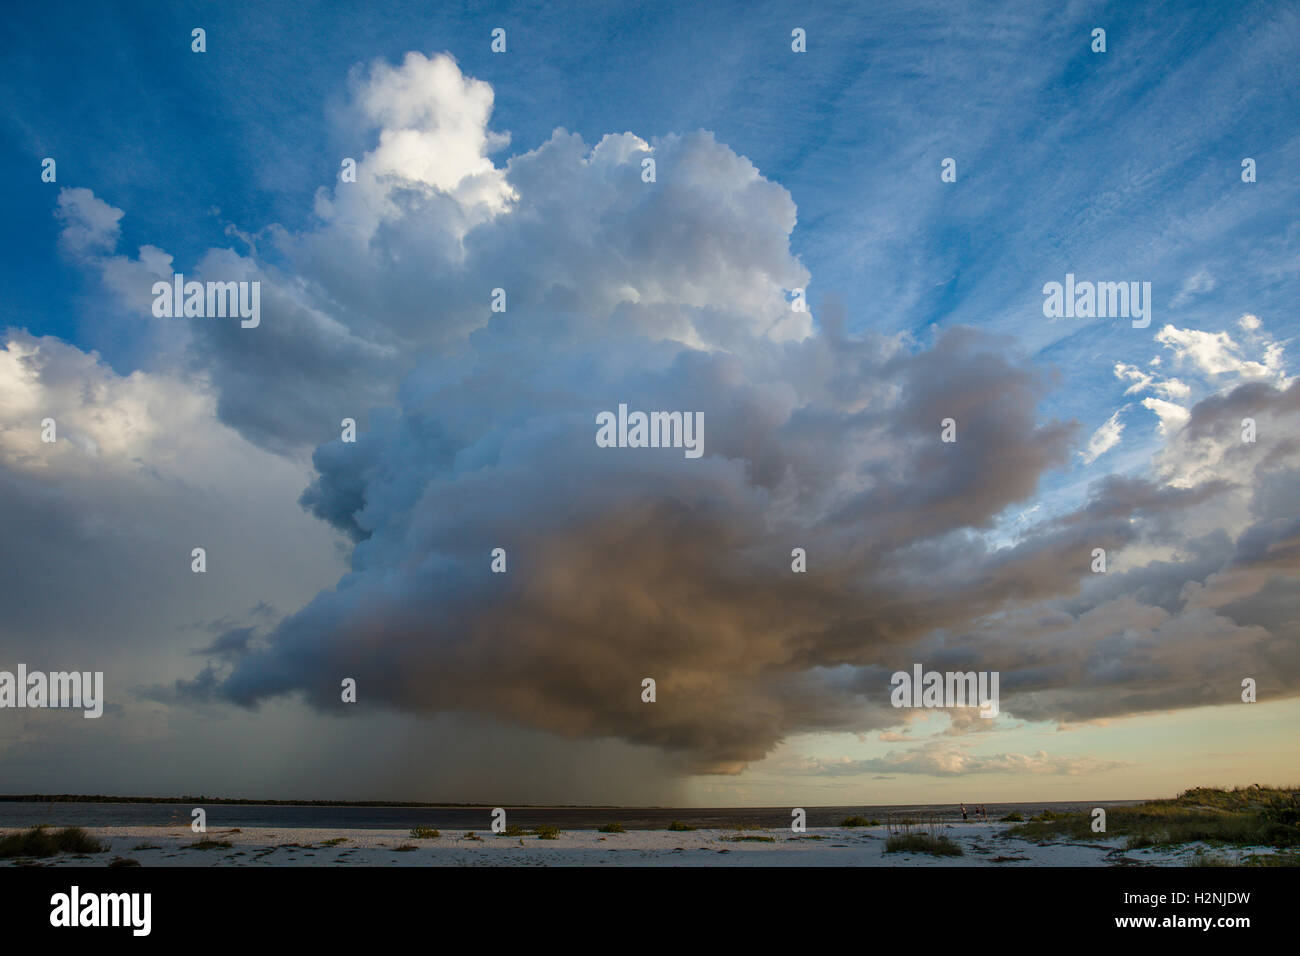 Huge rain storm cloud over Gulf of Mexico from Gasparilla Island Florida - Stock Image